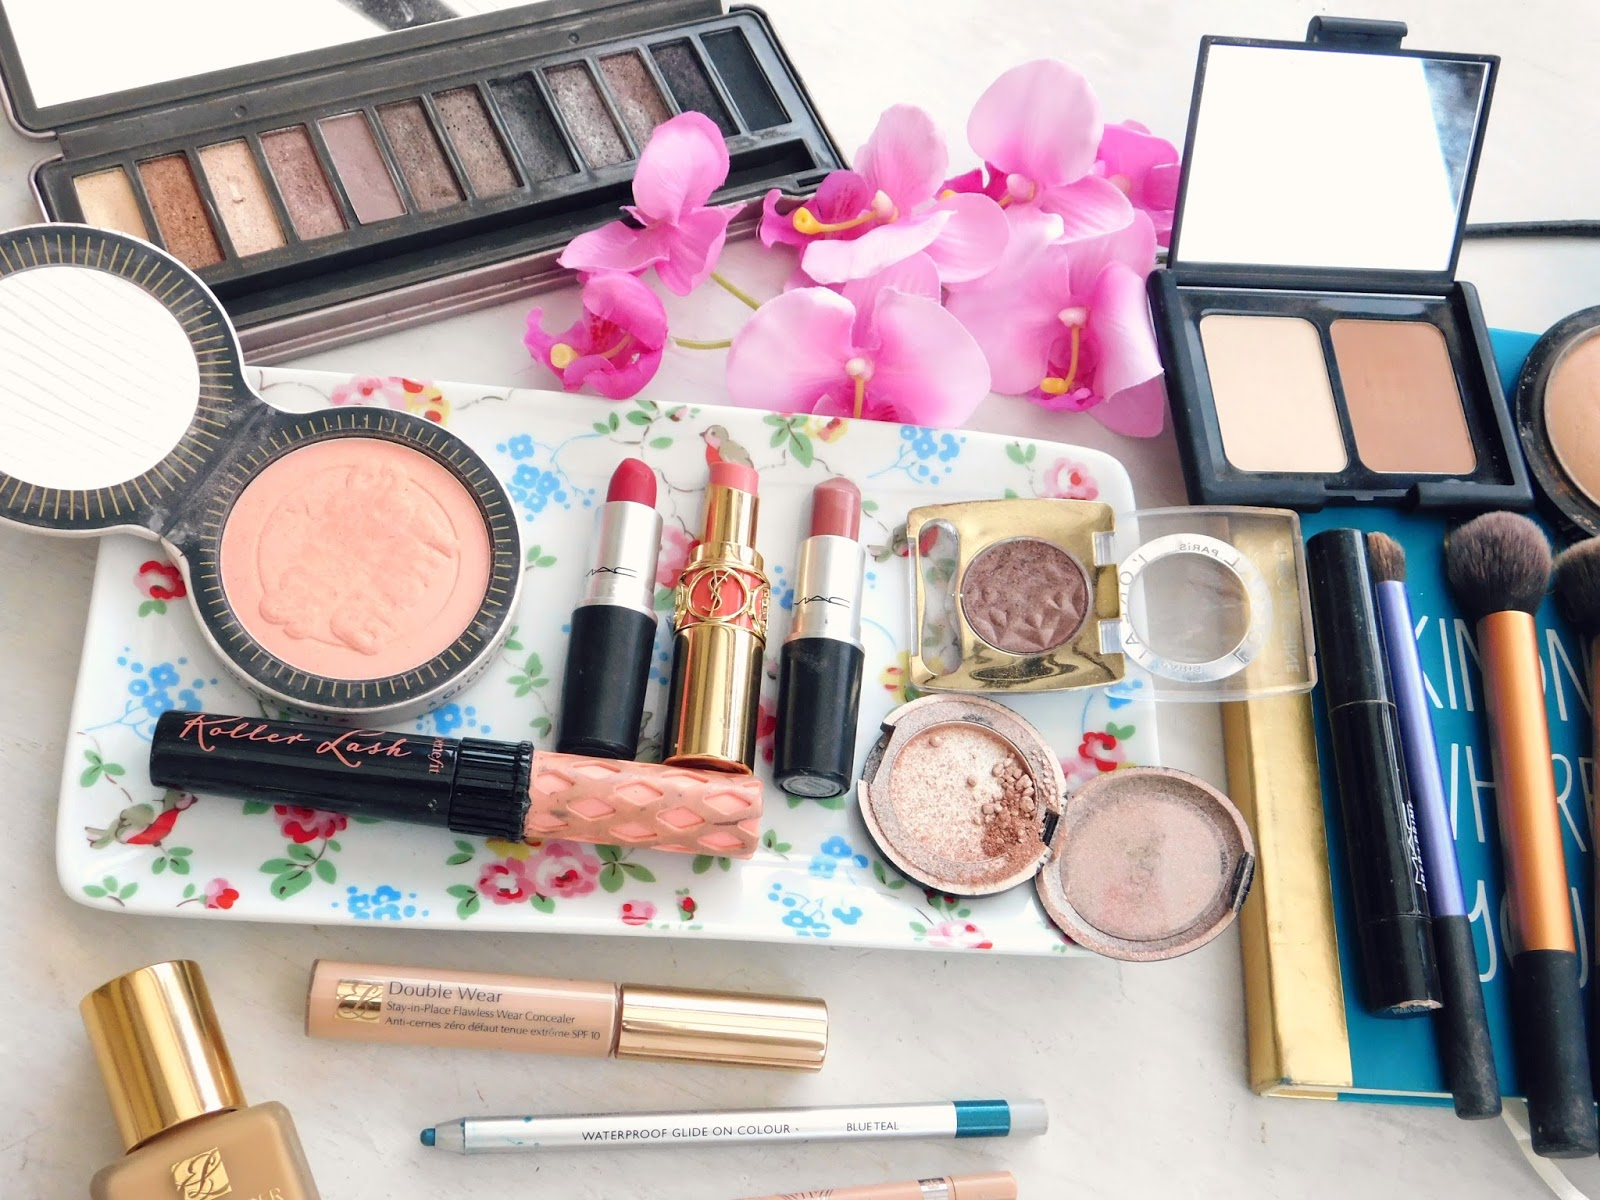 Beauty Favourites, Annual Beauty Favourites, Makeup, Beauty, Top Products, Urban Decay Favourites, Mac, YSL